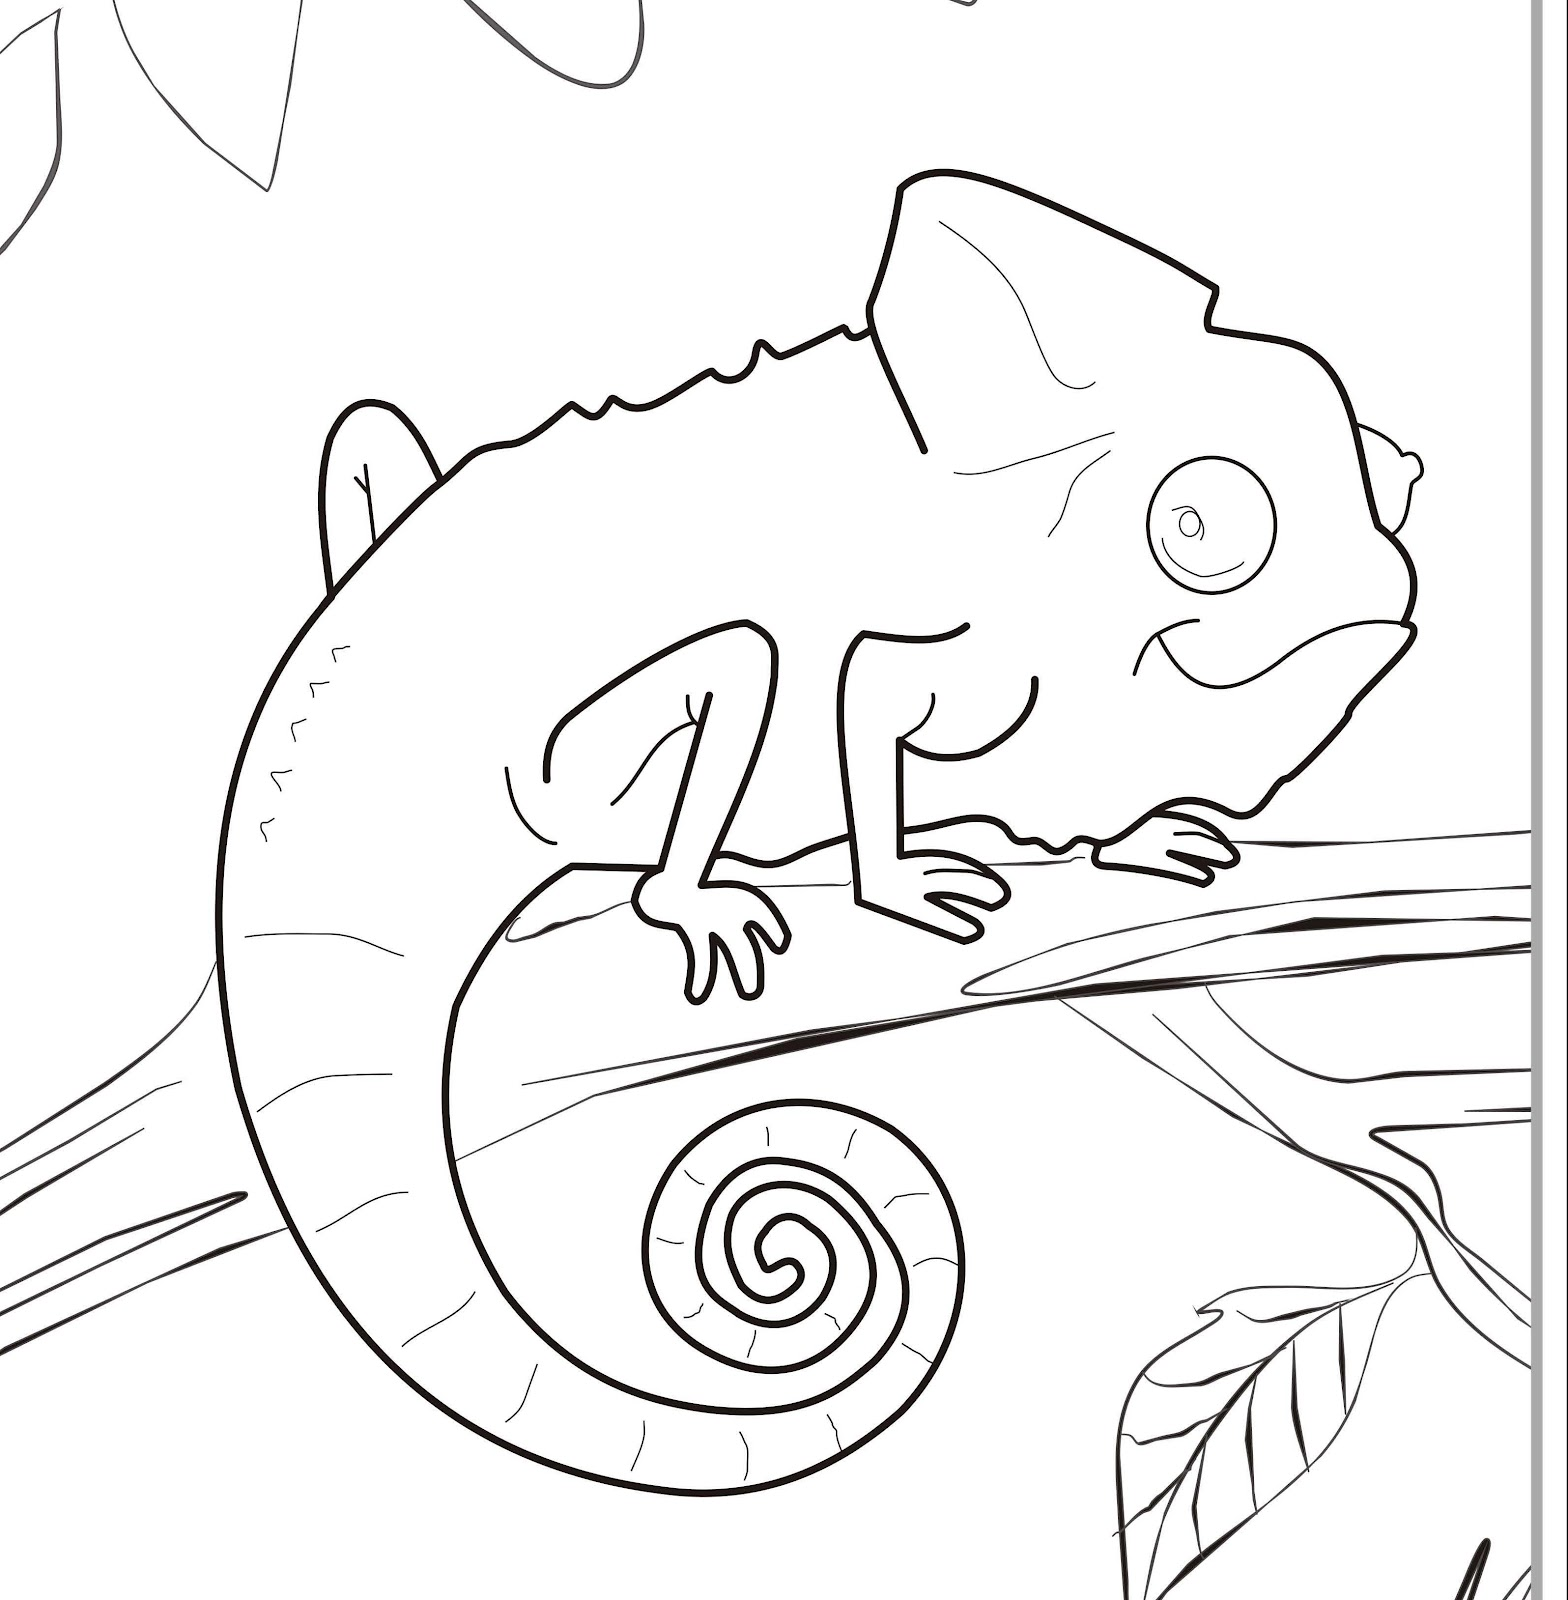 Chameleon Drawing Template at GetDrawings.com | Free for personal ...